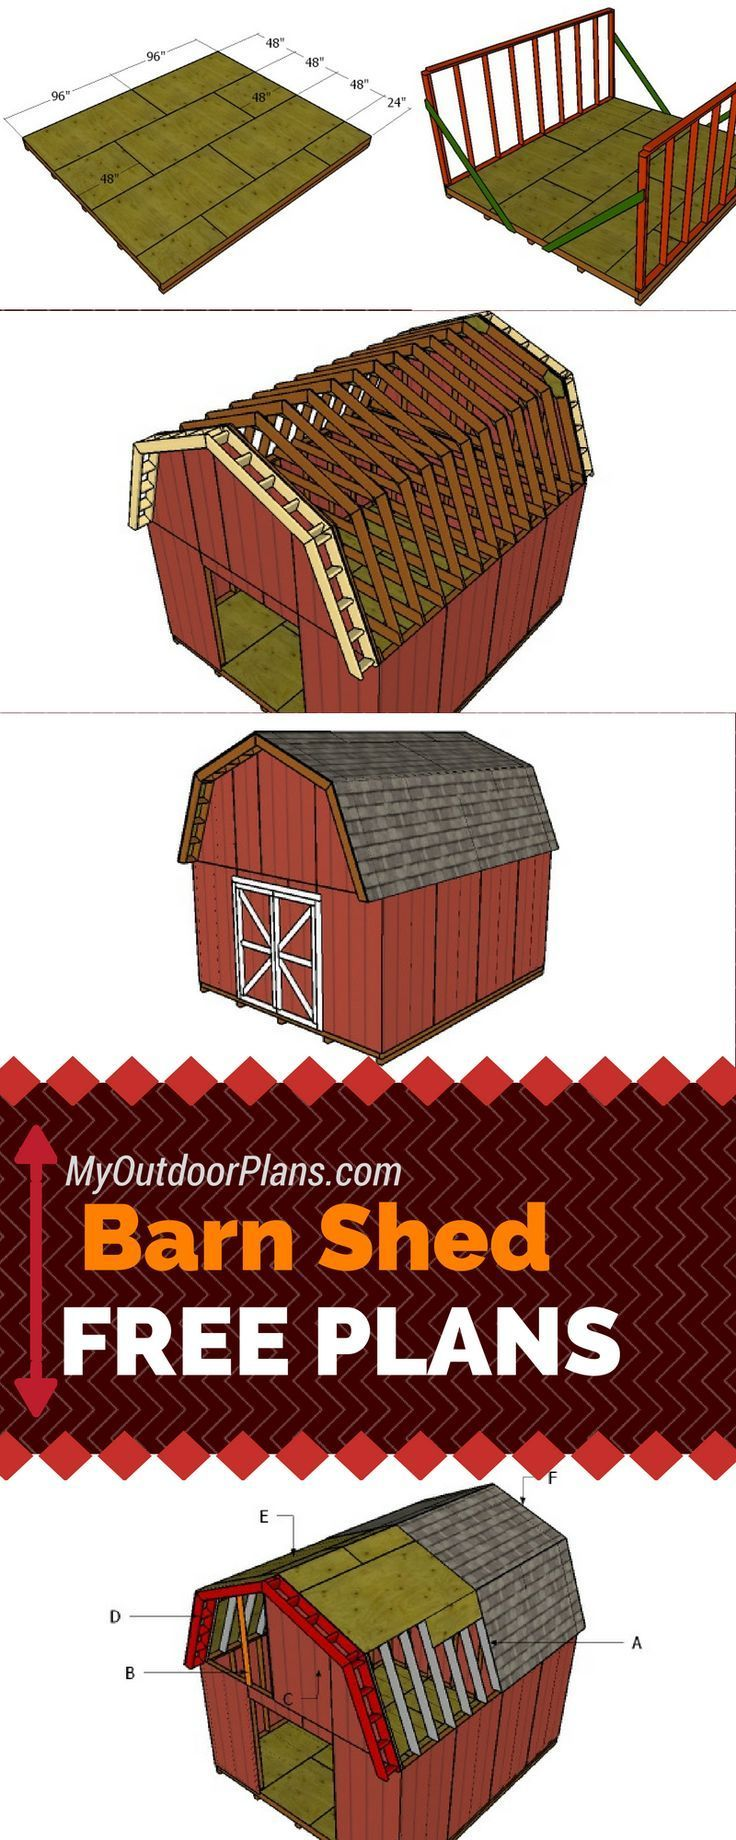 Free Barn Shed Plans - Learn how to build a 14x16 gambrel shed with my free instructions and step by step diagrams! http://myoutdoorplans.com #diy #shed